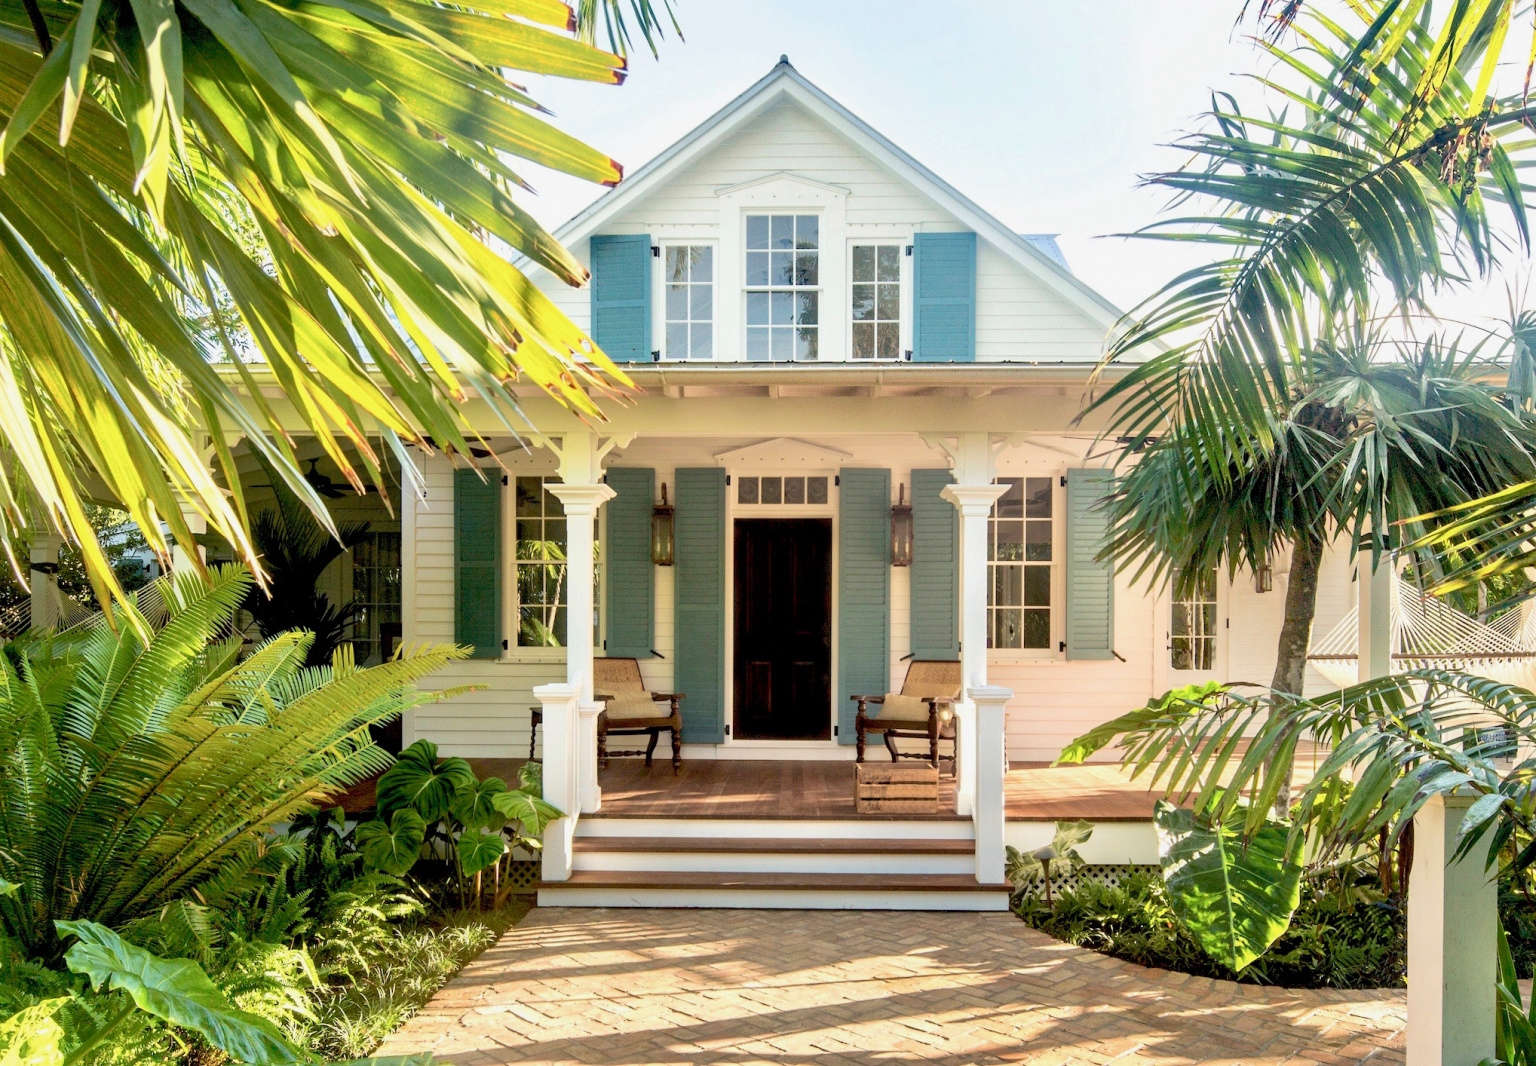 three weeks before last years hurricane key westbased landscape architect craig reynolds completed a new tropical garden for one of the best known - Garden House Key West